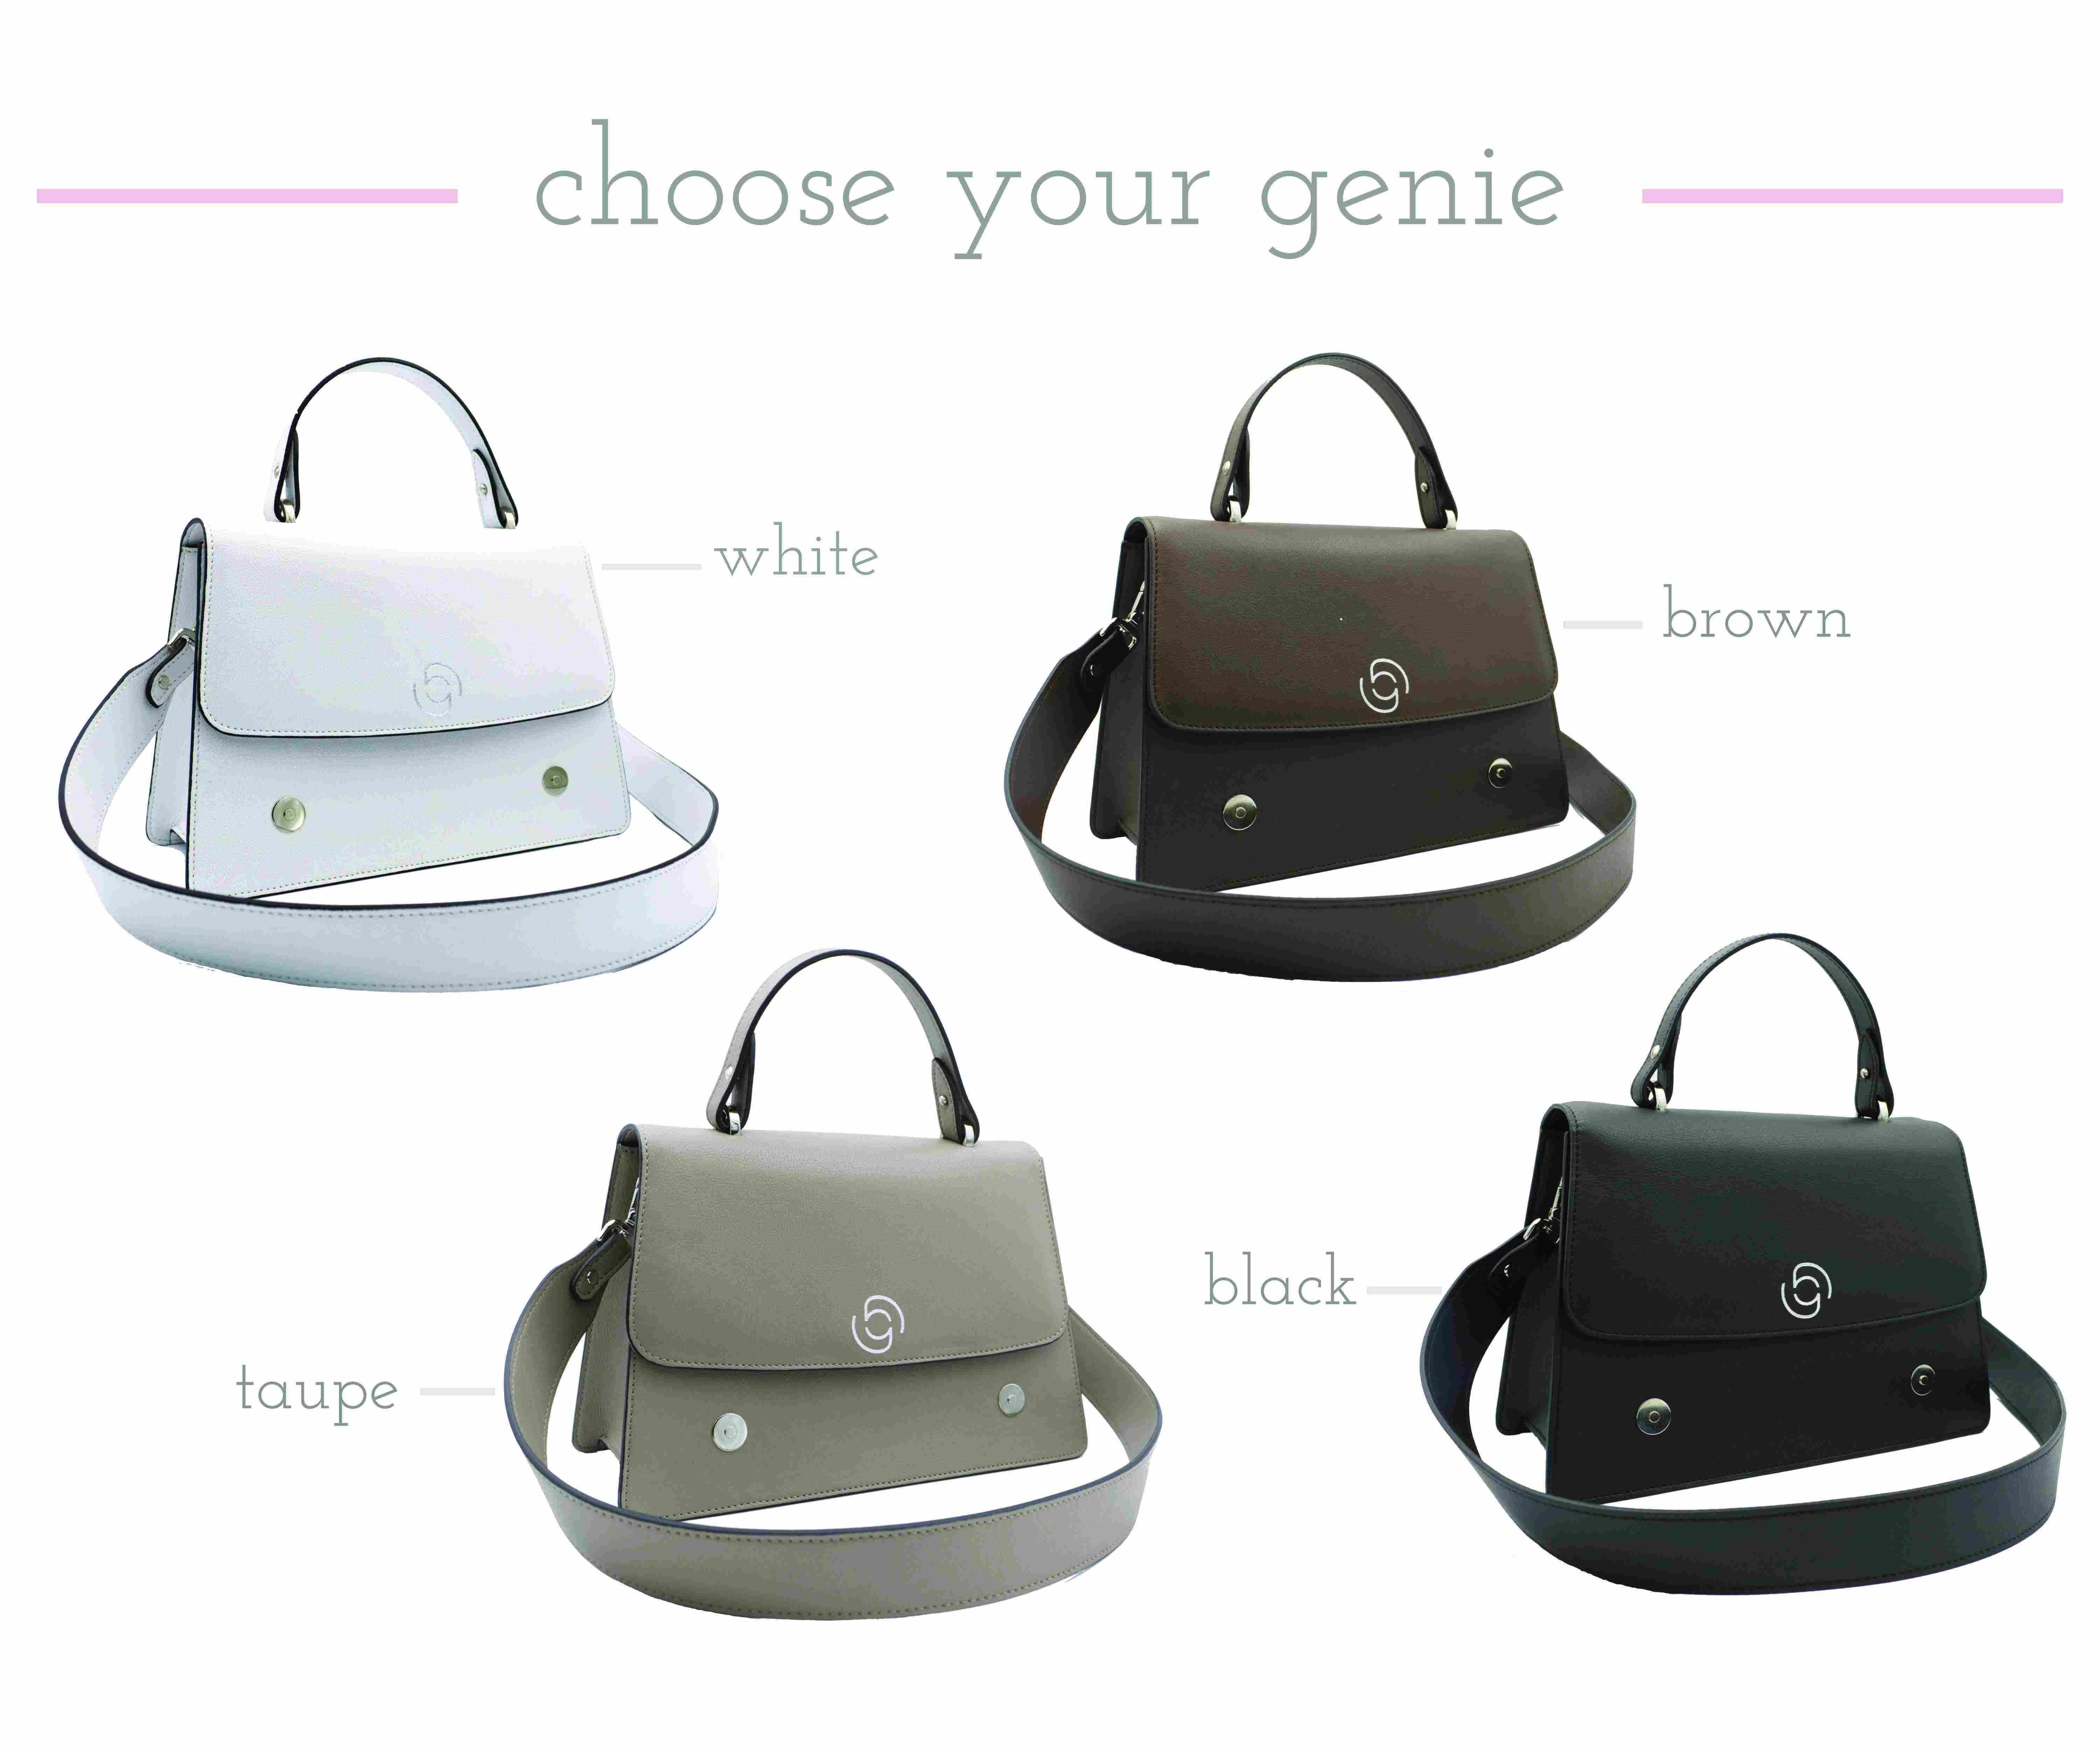 Happie Genie vegan handbag